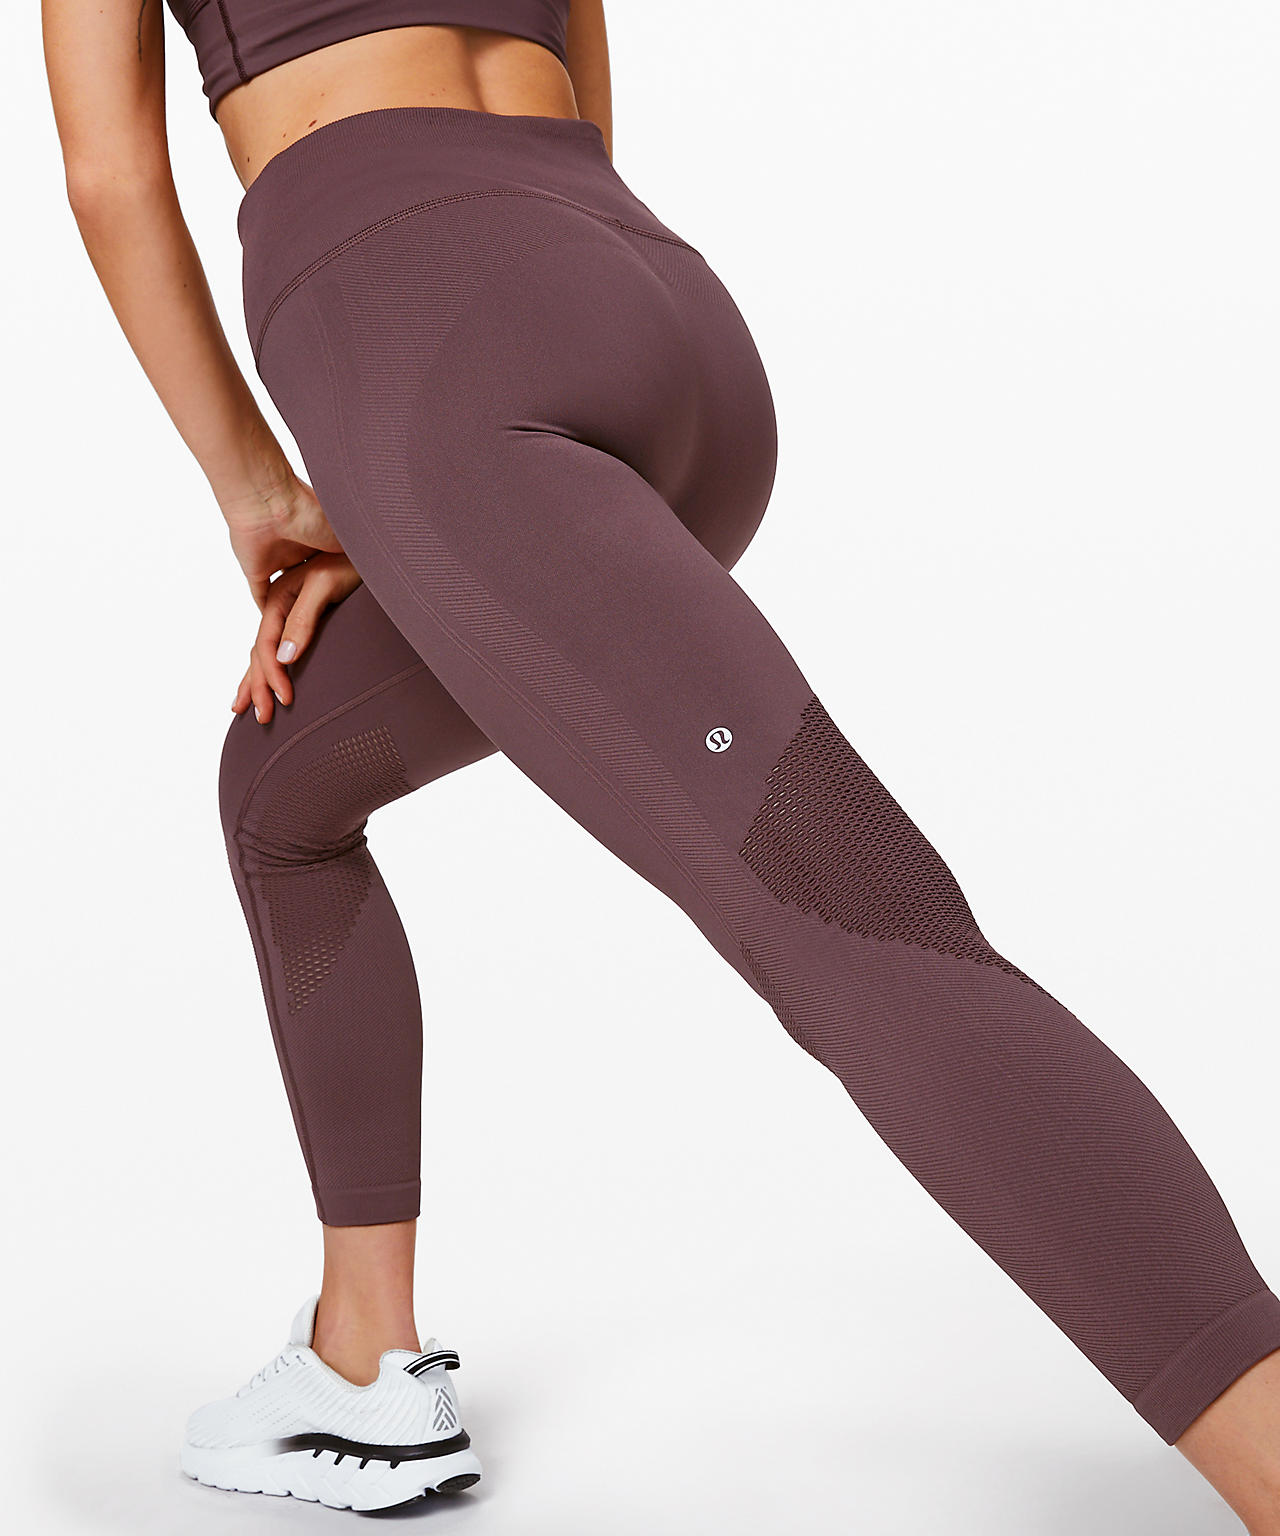 For The Chill Of It Tight, Lululemon Upload